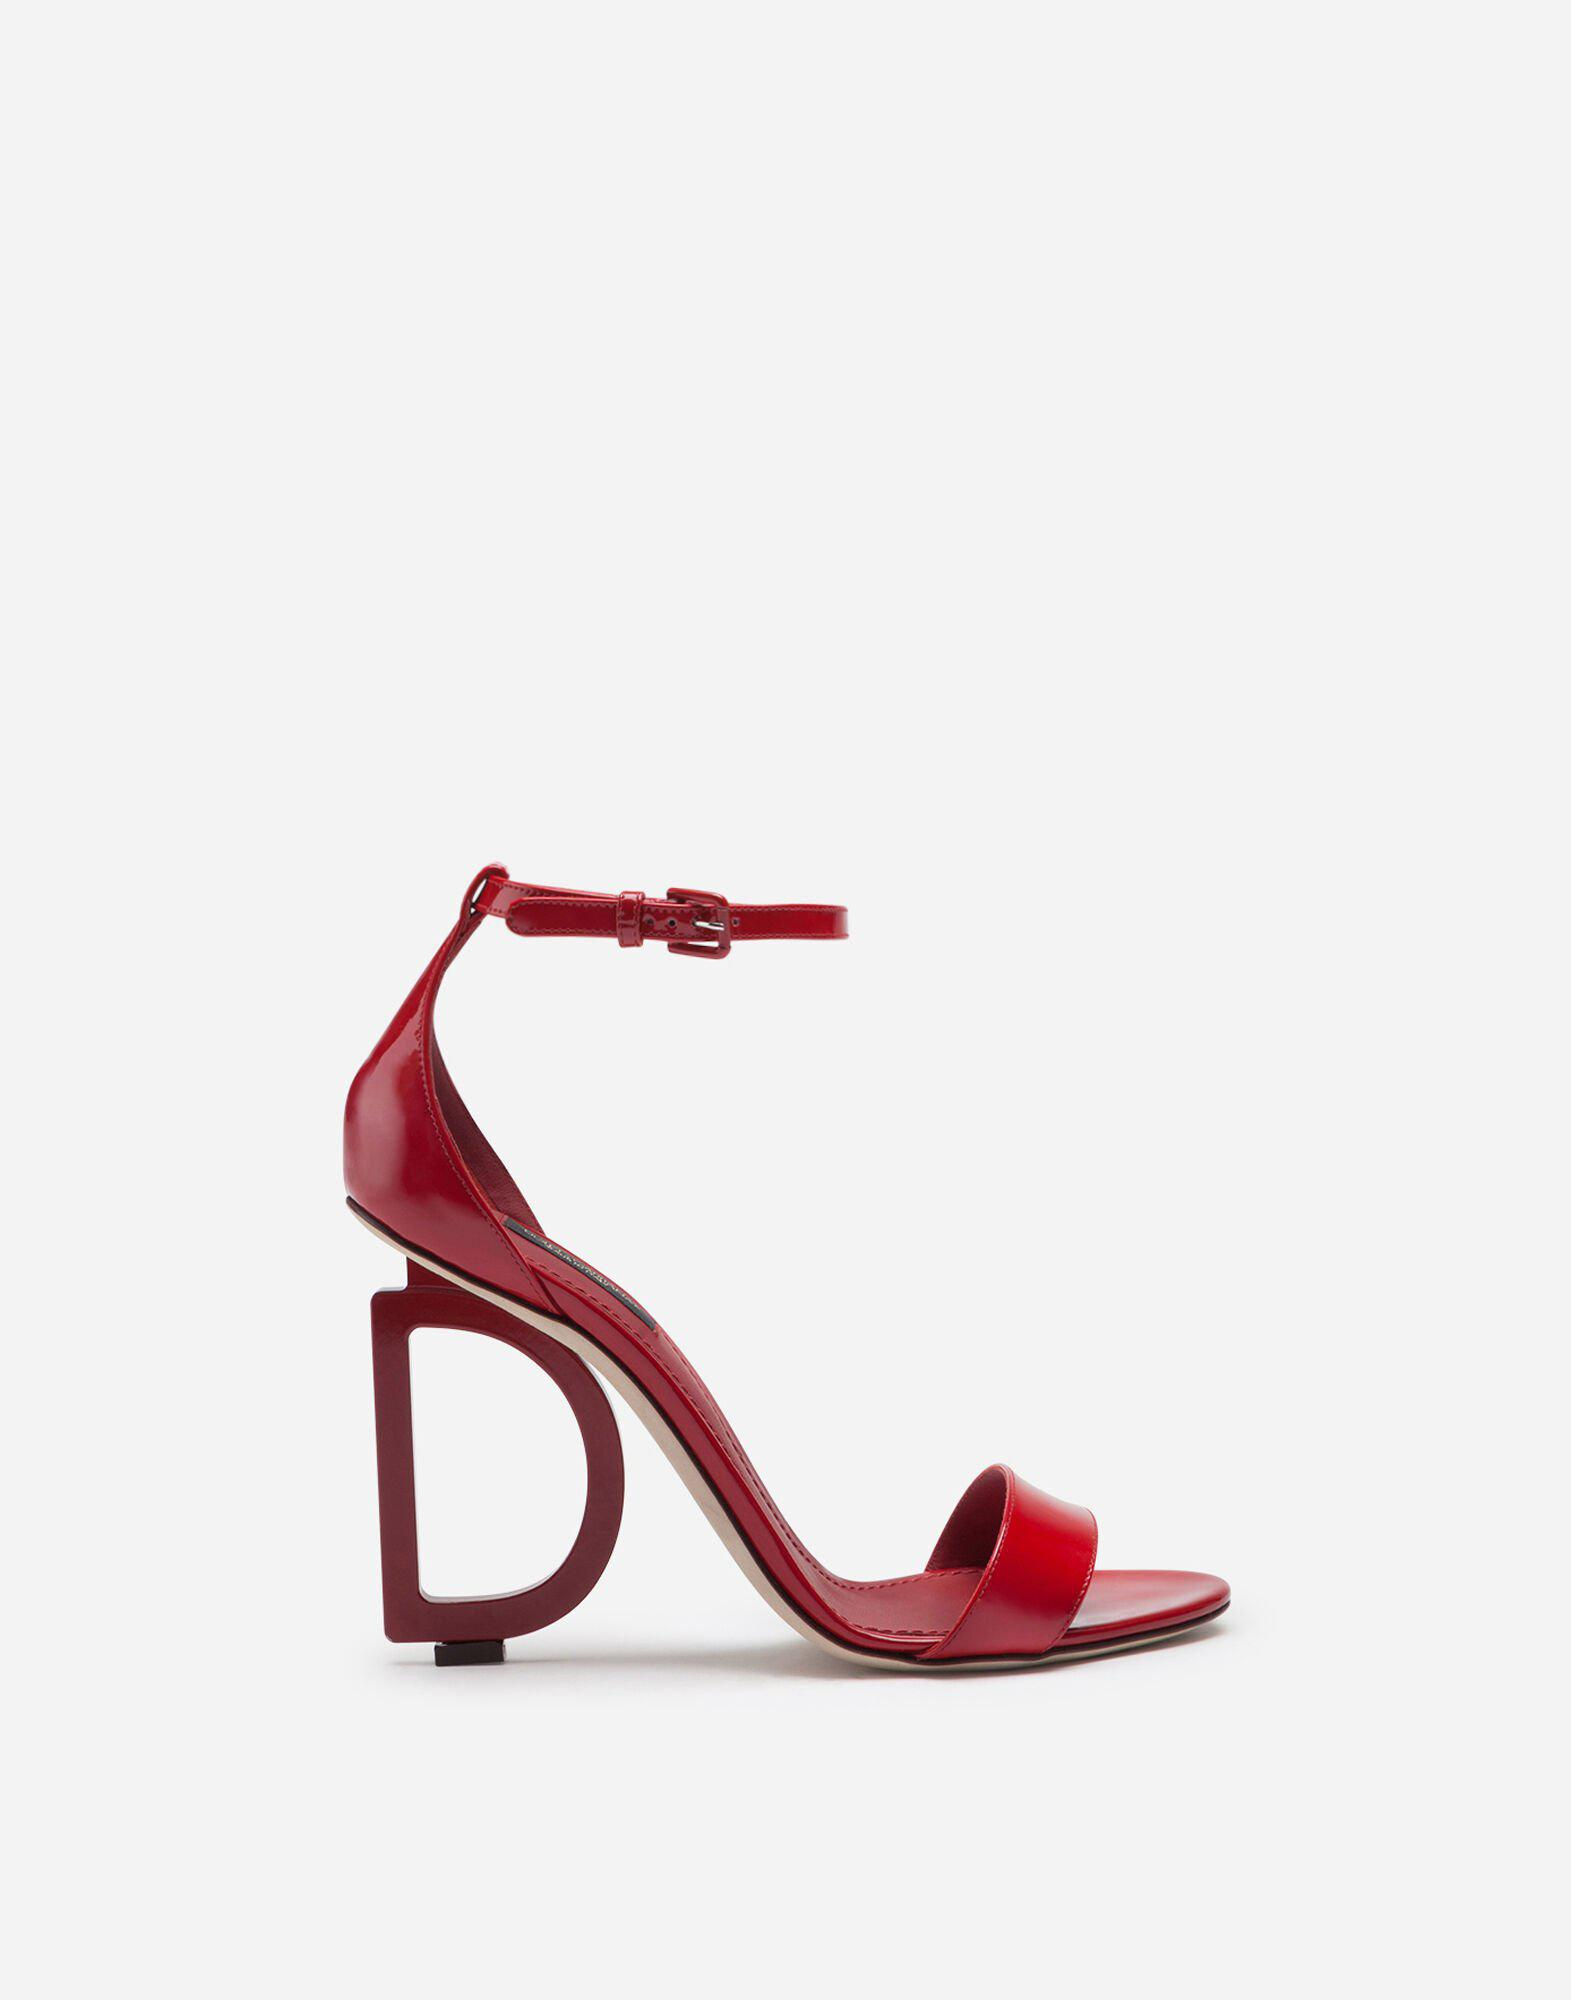 Patent leather sandals with DG heel